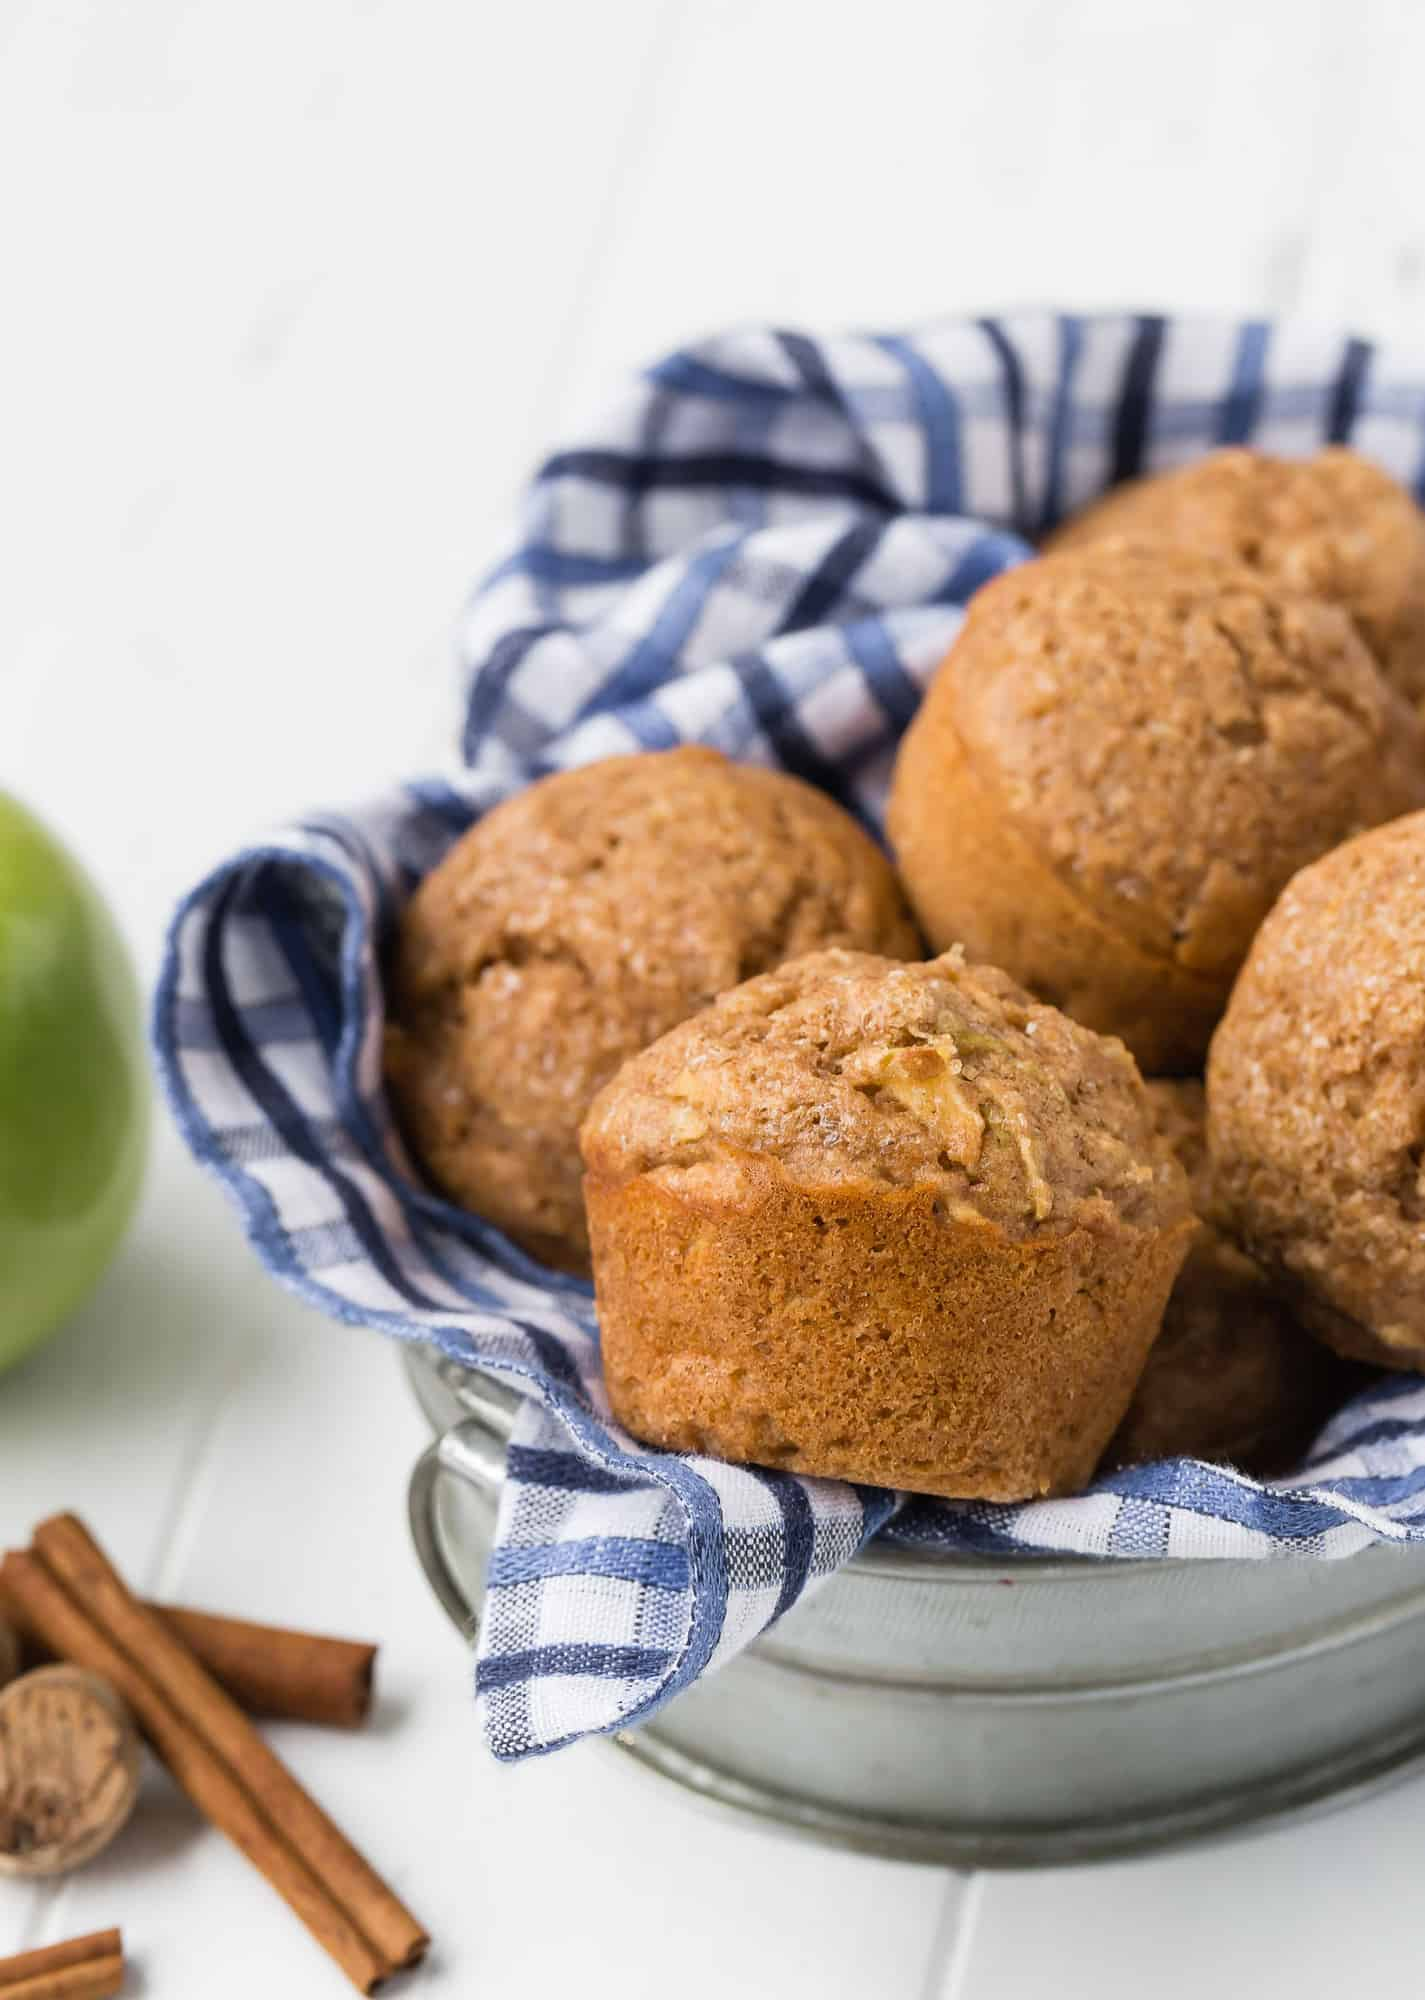 Whole wheat apple muffins in a metal basket with a blue and white checkered towel.